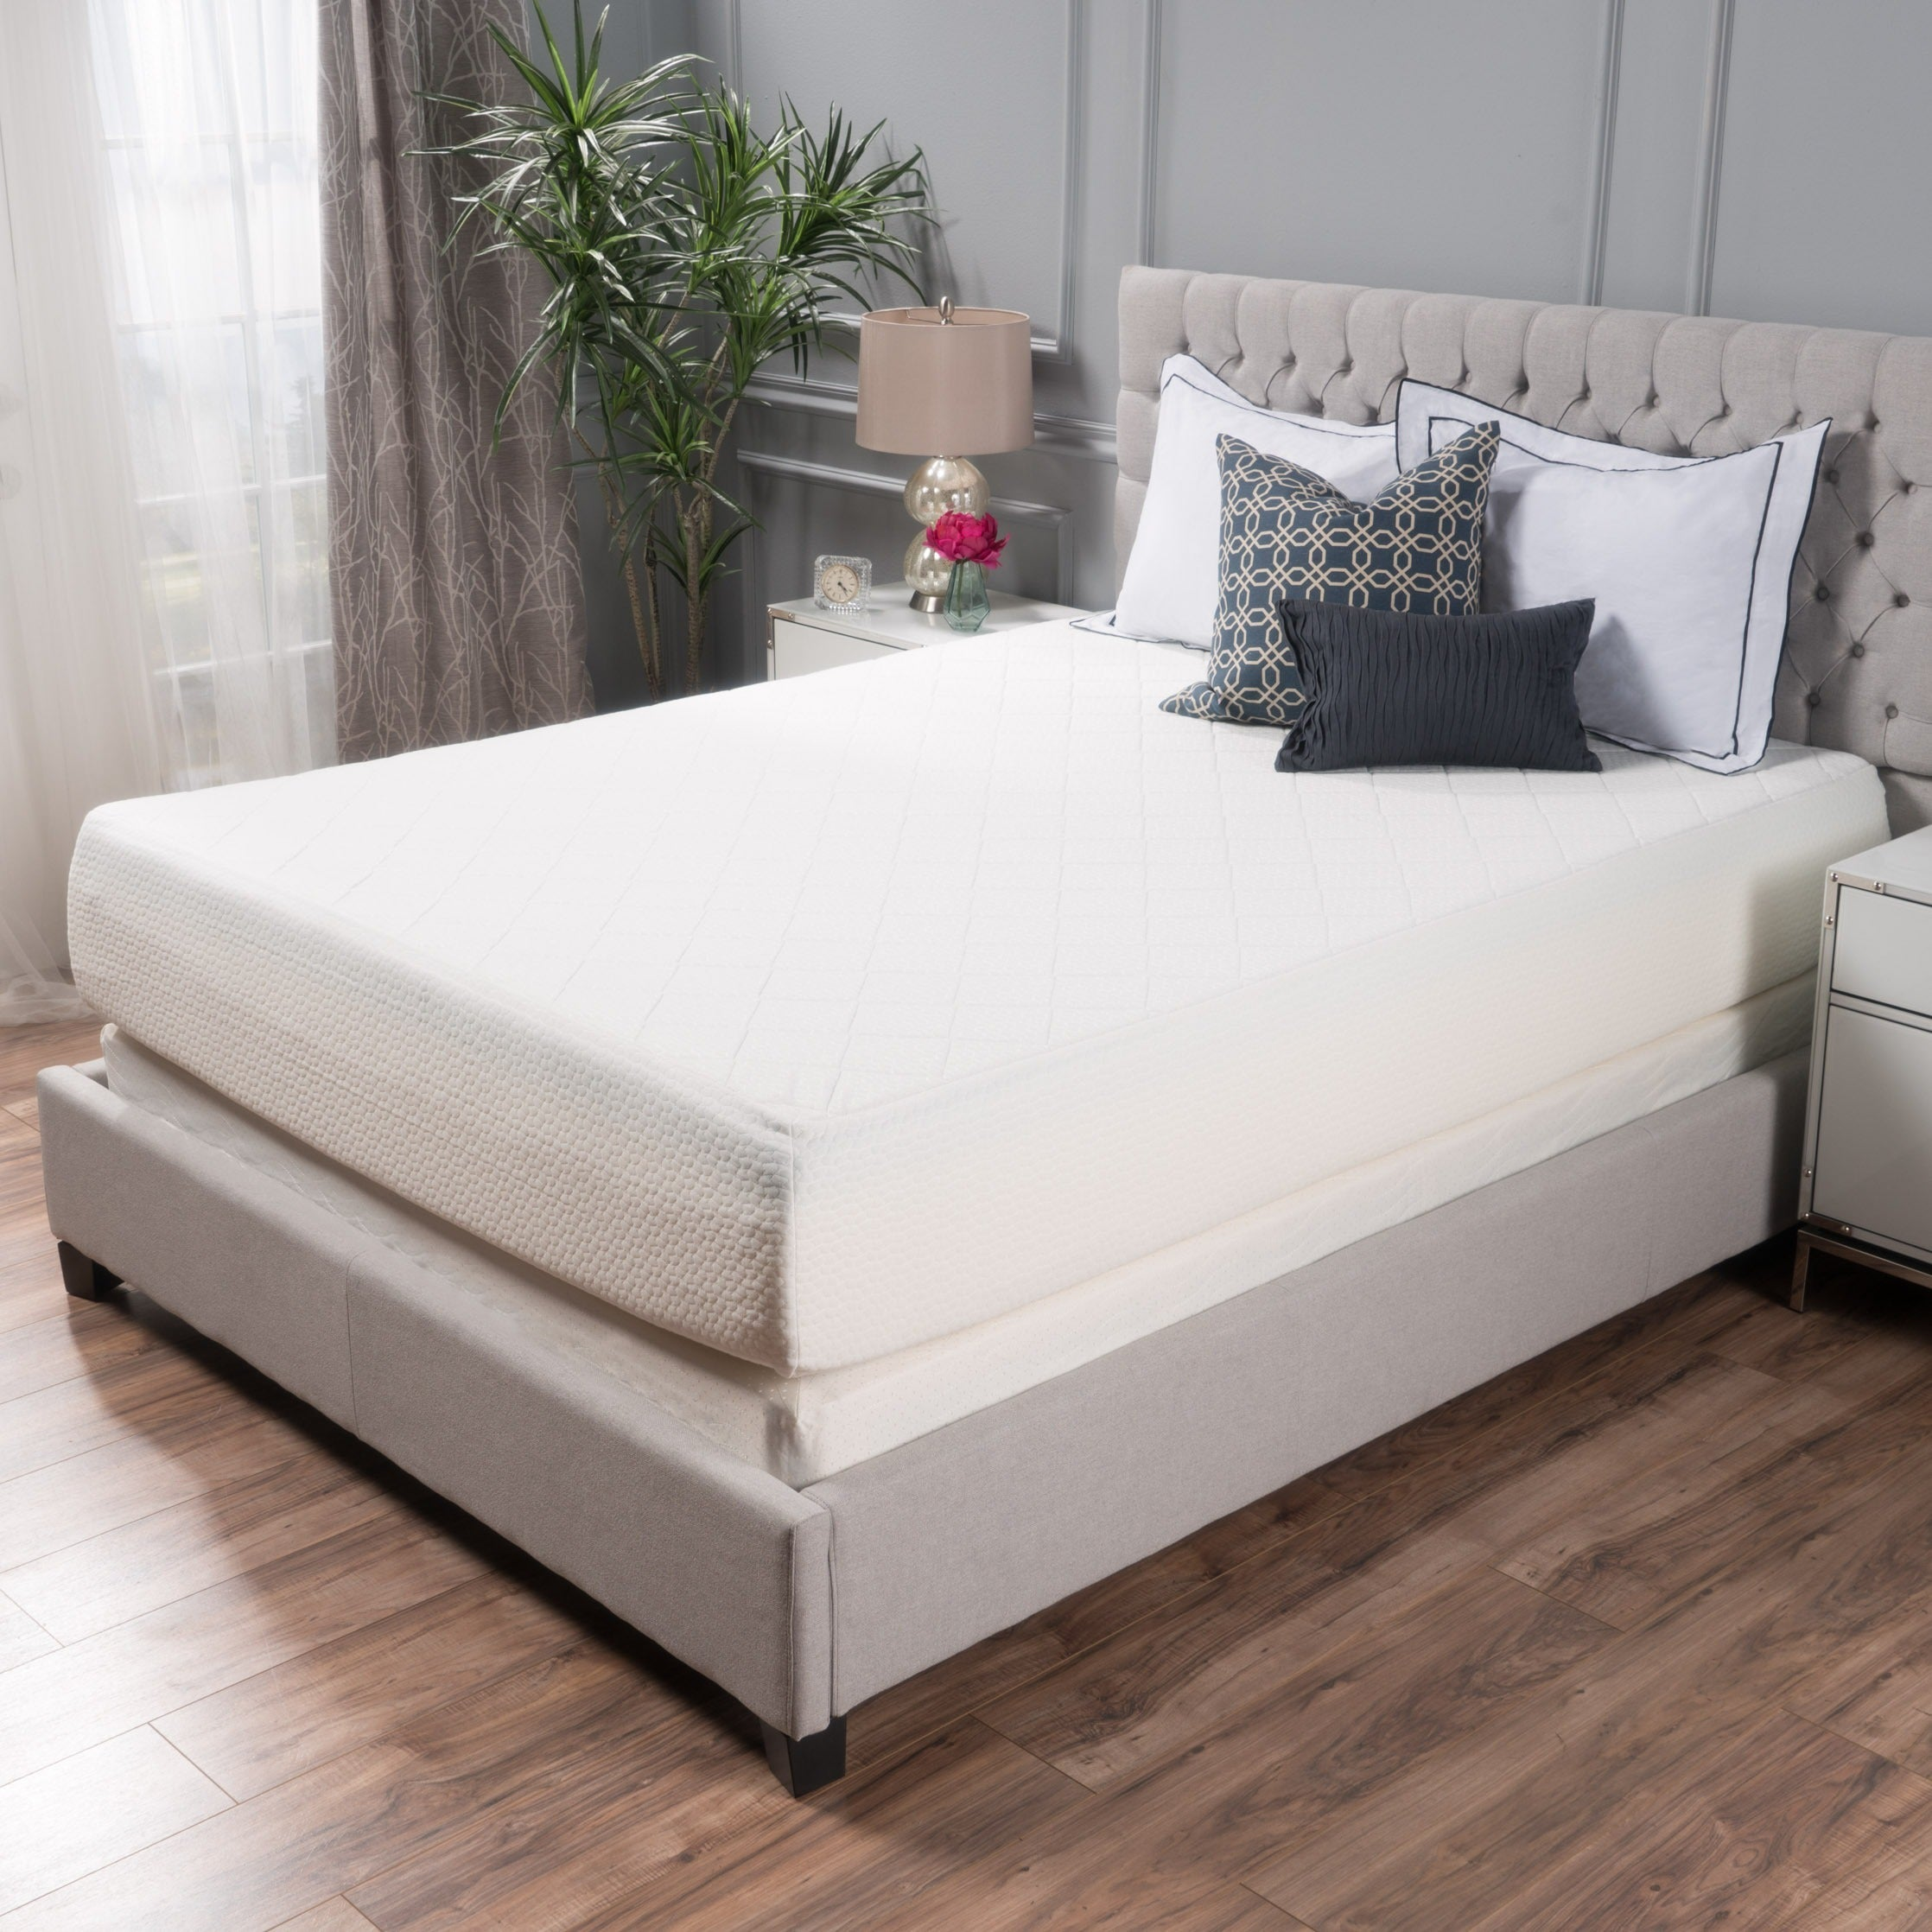 Choice 12 inch Queen size Memory Foam Mattress by Christopher